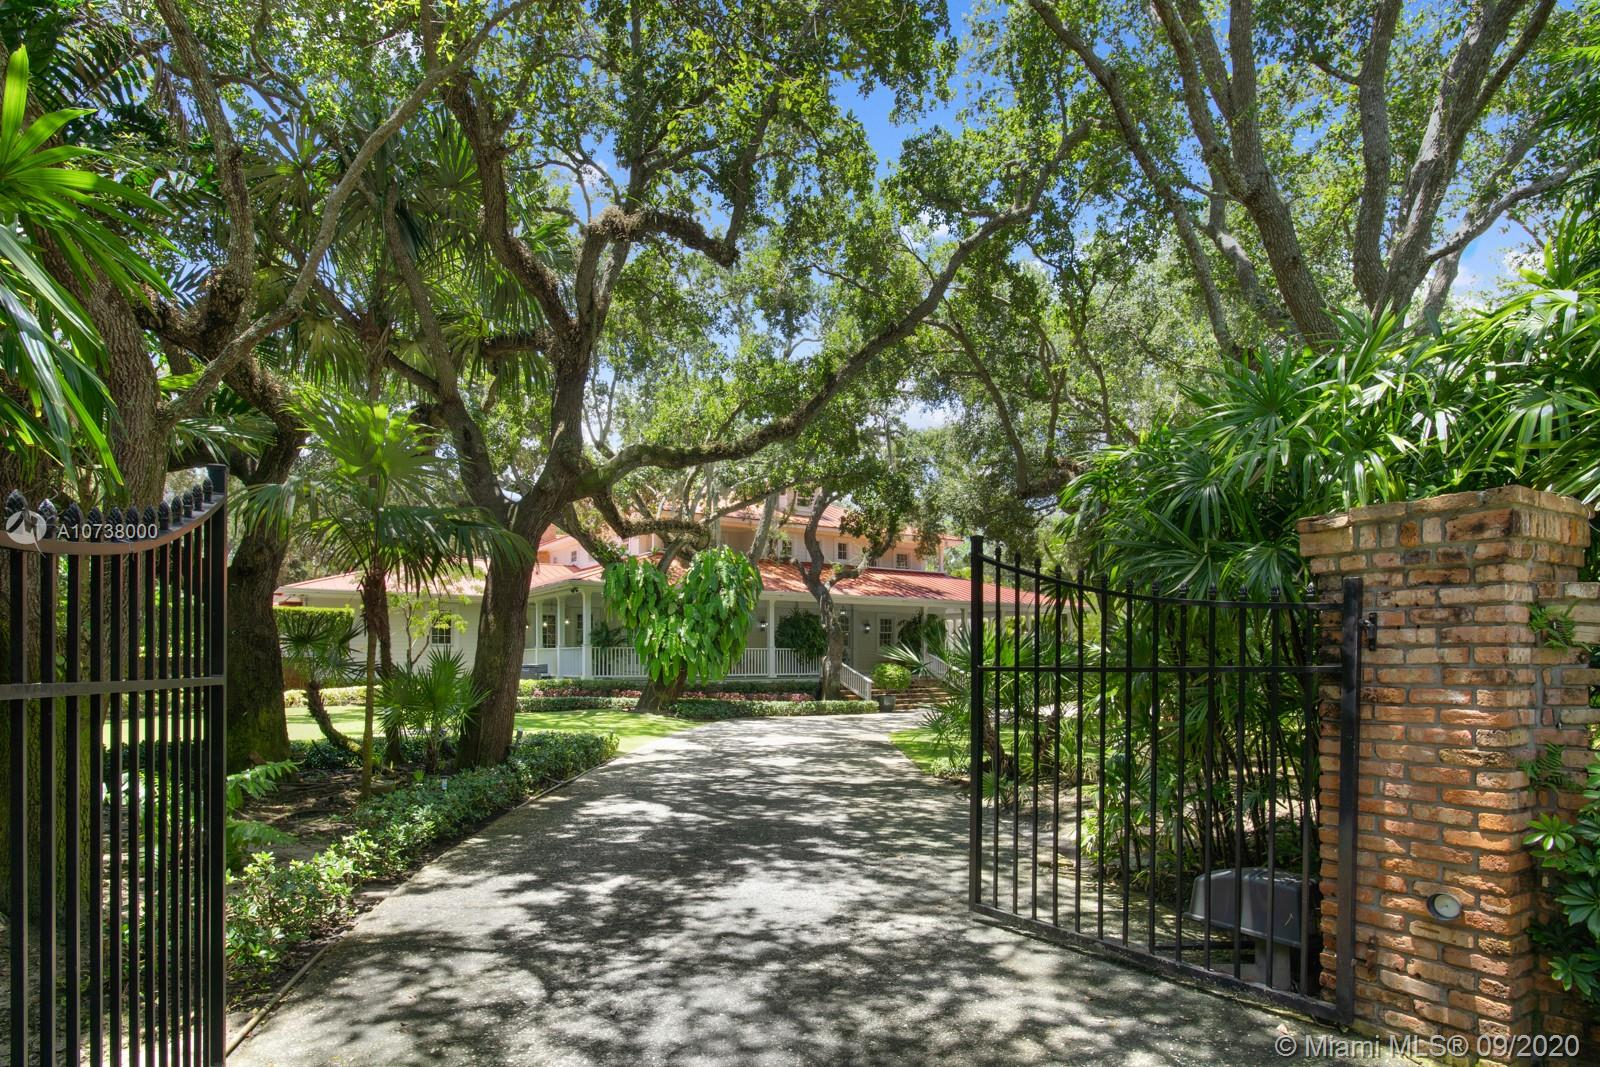 A rare offering of one of the finest waterfront homes in Snapper Creek with private dockage for serious boaters and direct bay access.  This custom home, designed by David Johnson, resides on almost 1.5 aces of lush landscaping, including exquisite lawns, mature trees, ½ basketball court, resort like pool, and 2-story guest house.  The 16k SF house, wrapped with wide porches, has 6 bedrooms and 6.5 baths, a gourmet eat in kitchen, 2 family rooms, formal living and dining rooms, 5,000 bottle wine cellar, gym, media room, game room, dedicated play area for kids, wood cloaked office, 4 car garage with multiple storage areas and generator which can power the house for 2 weeks.  A truly one of a kind exceptional residence.